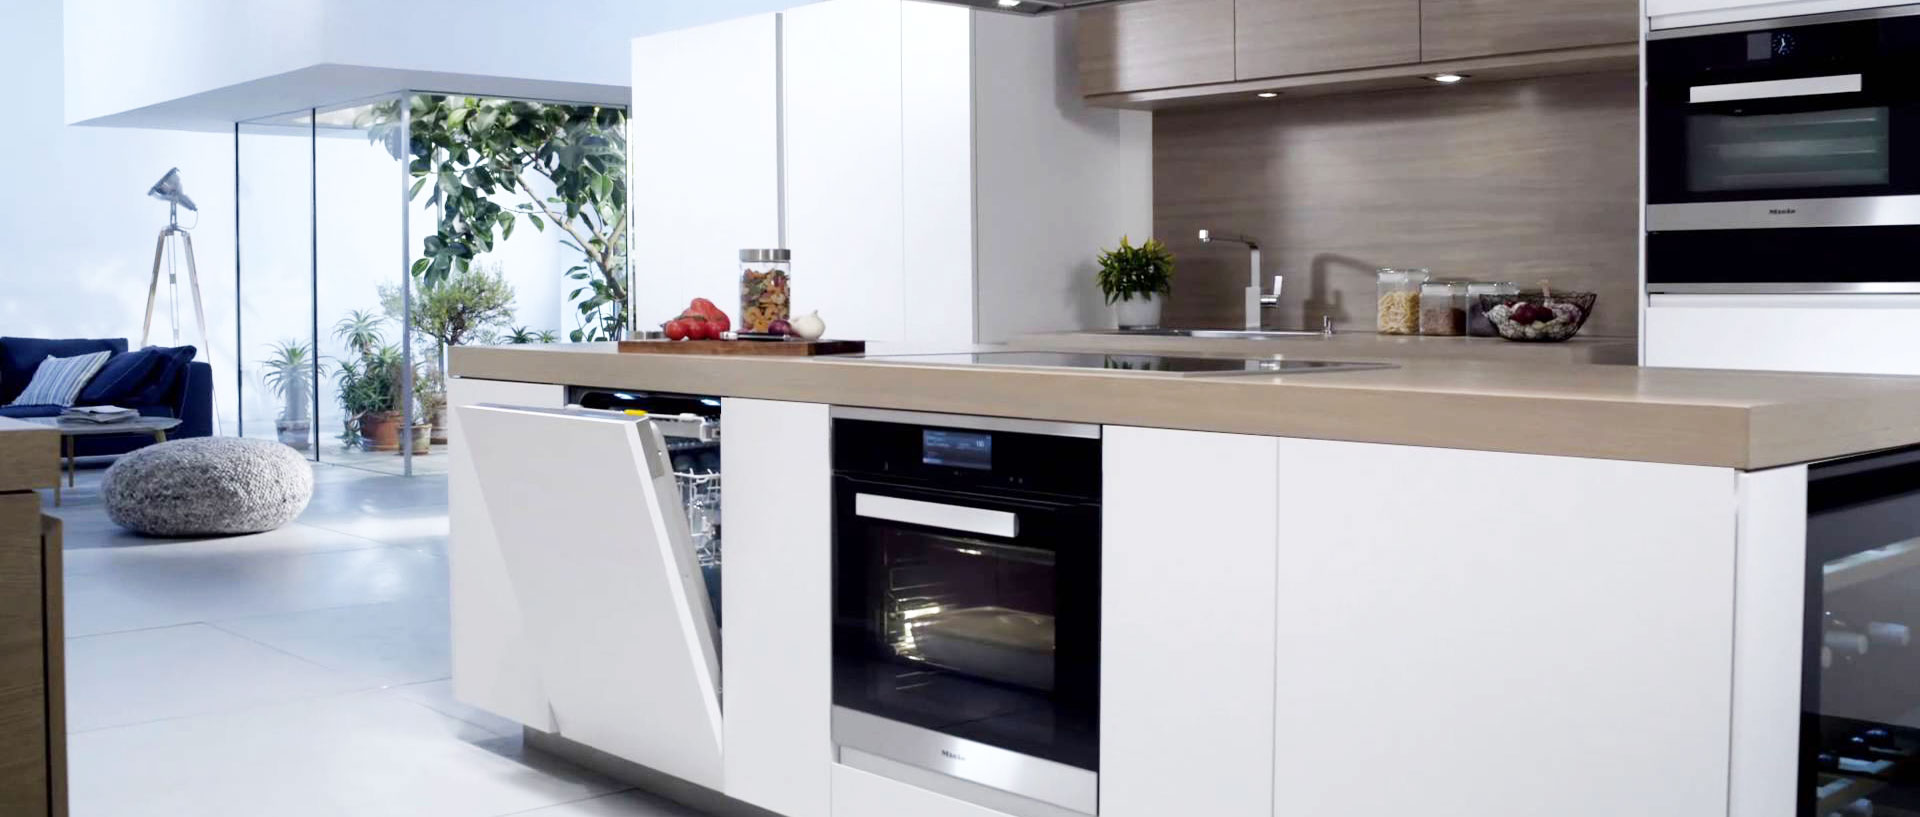 Dishwasher Replacement Service Melbourne